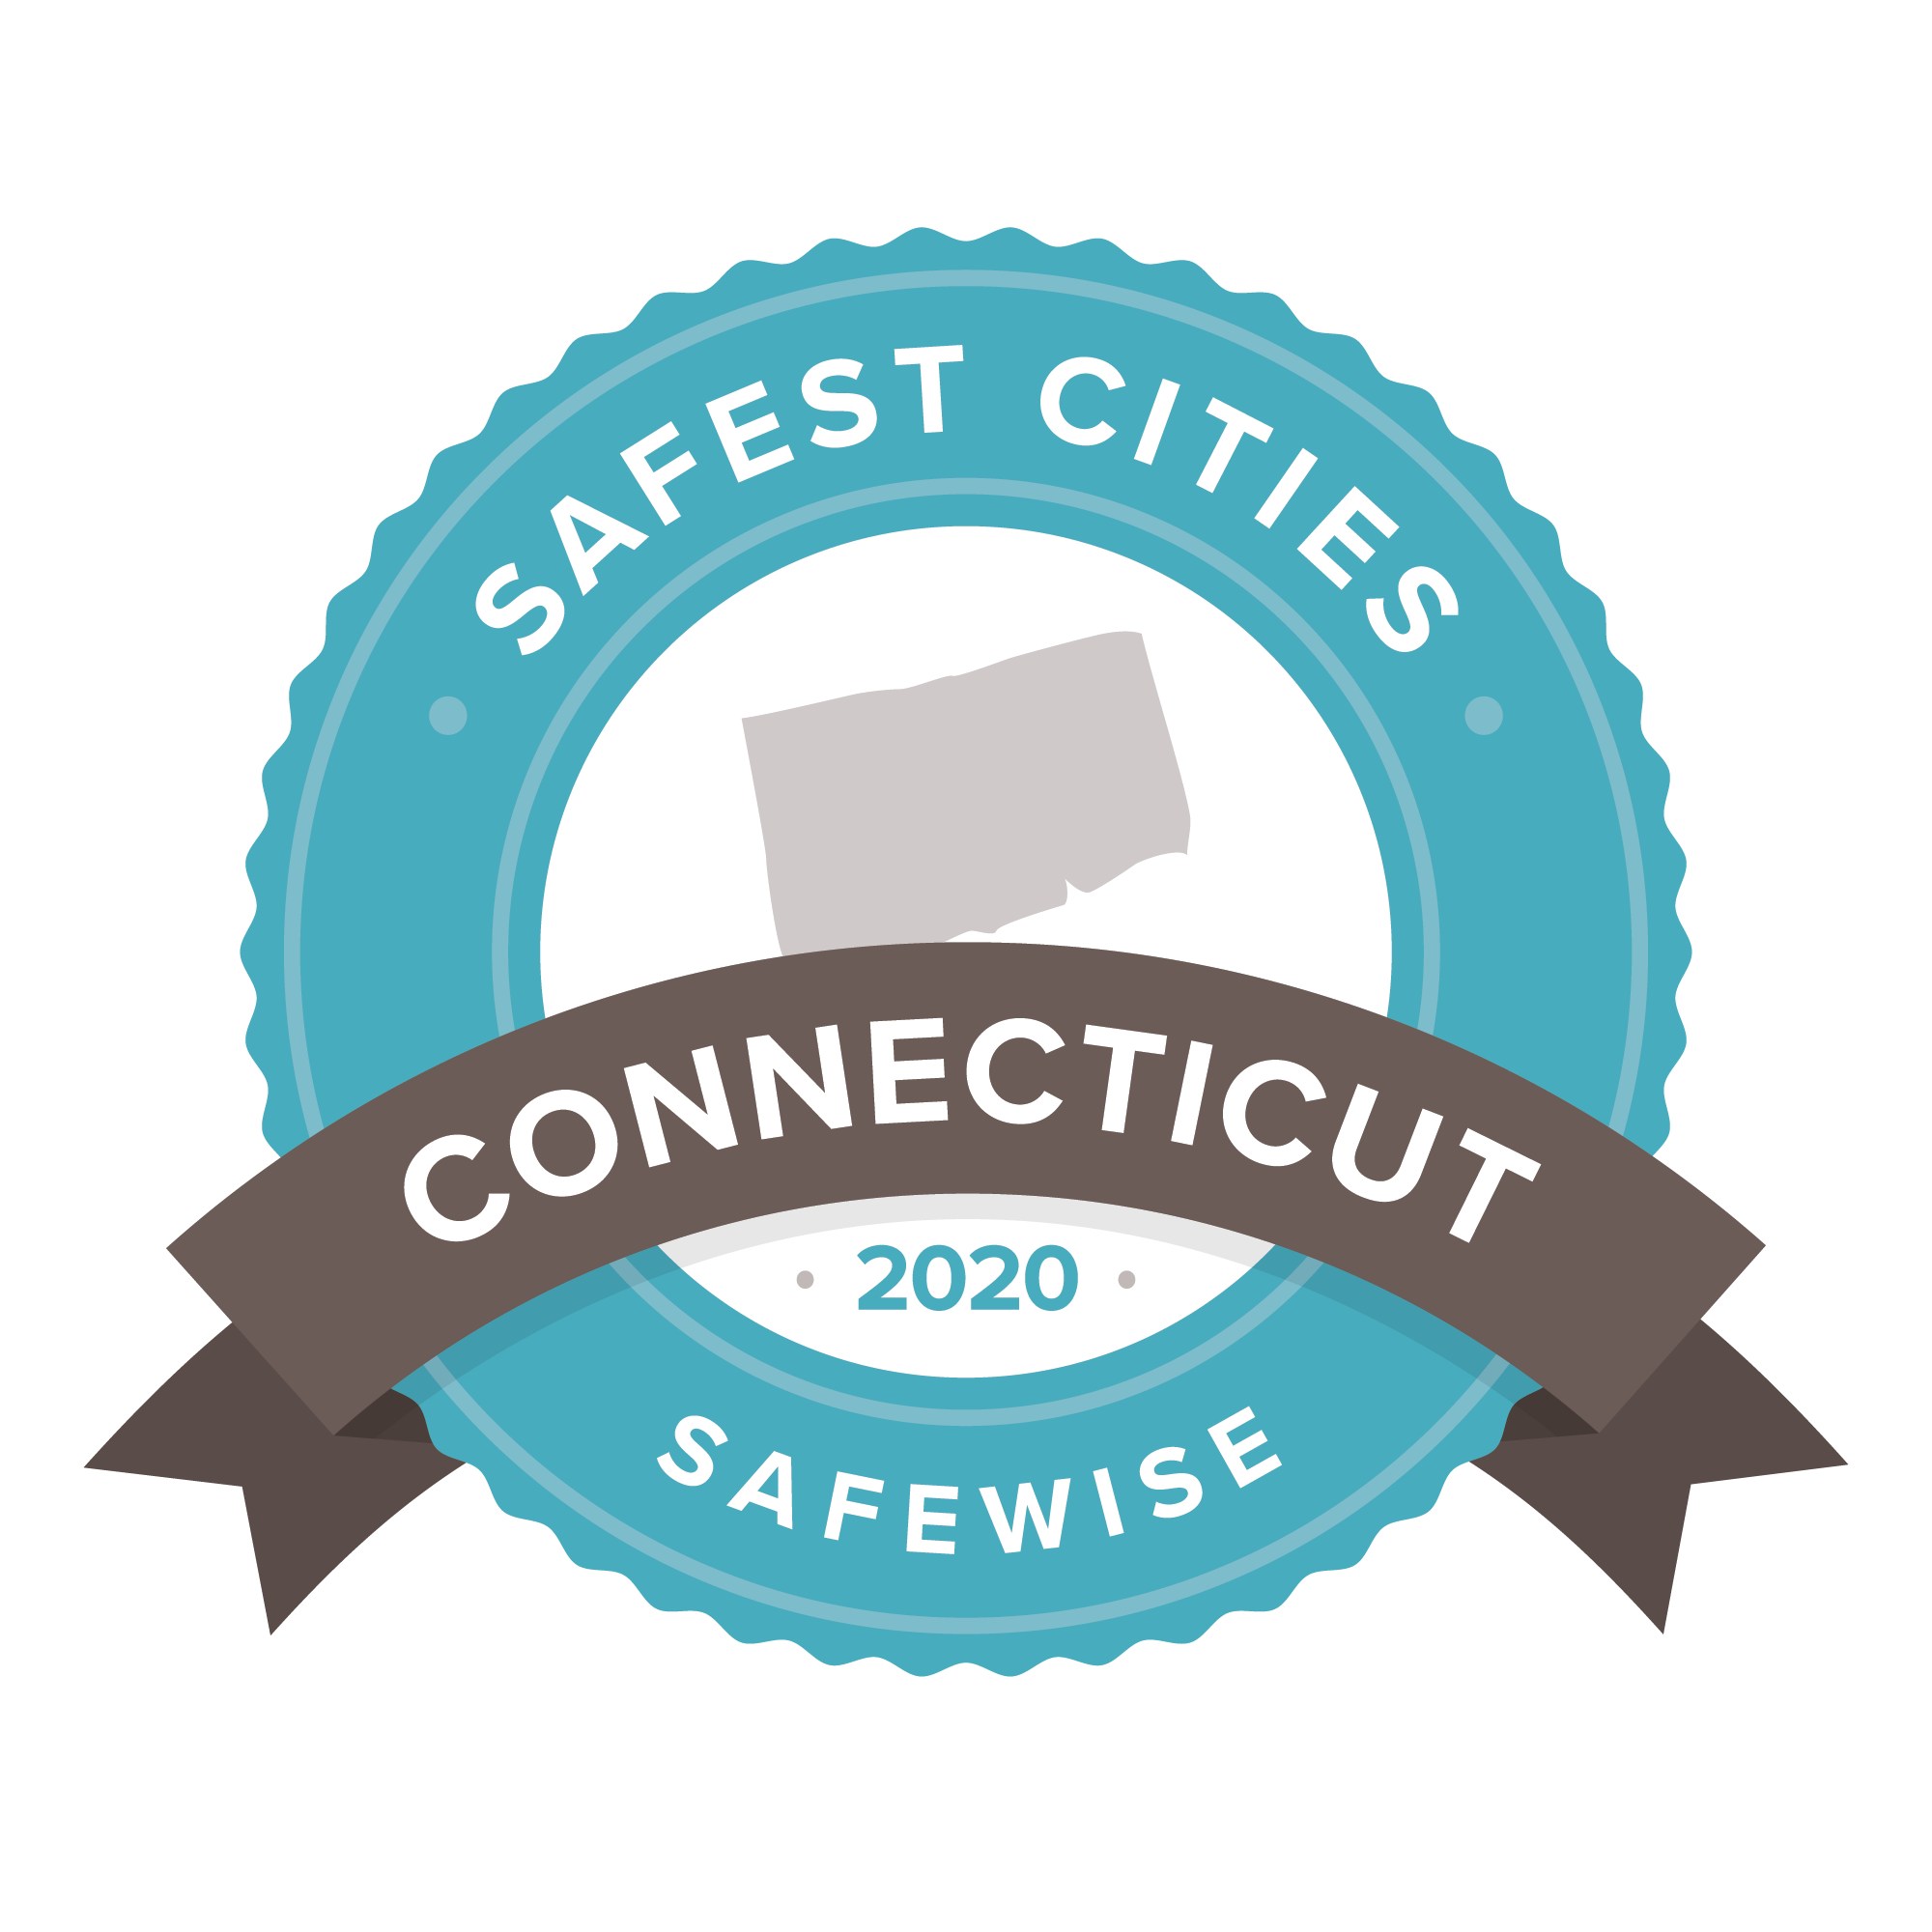 Connecticut safest cities badge